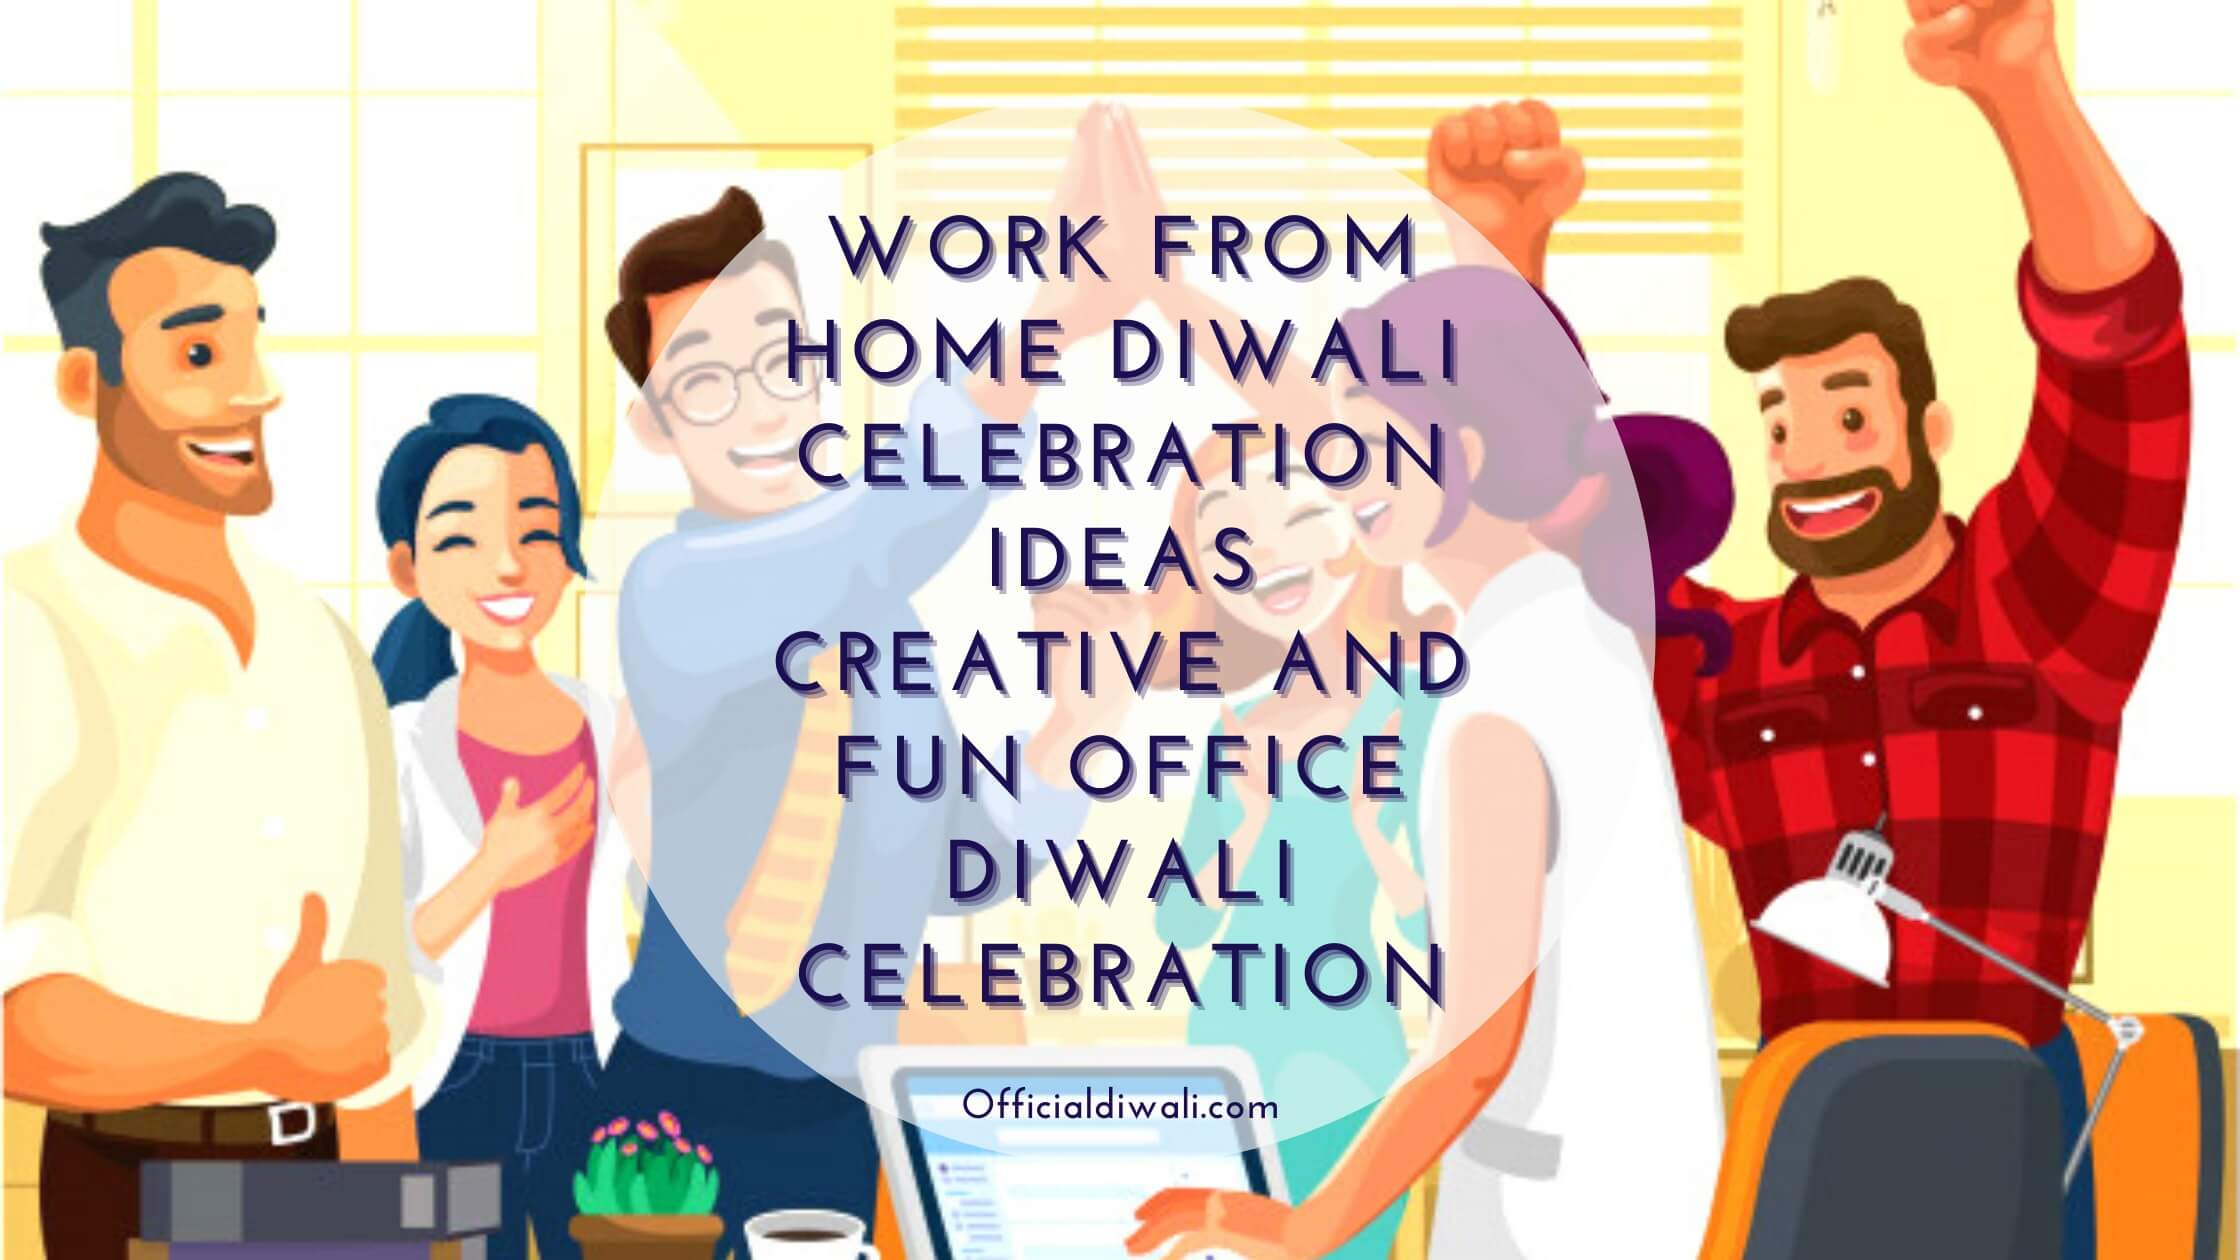 7 Work From Home Creative and Fun Diwali Celebration Ideas